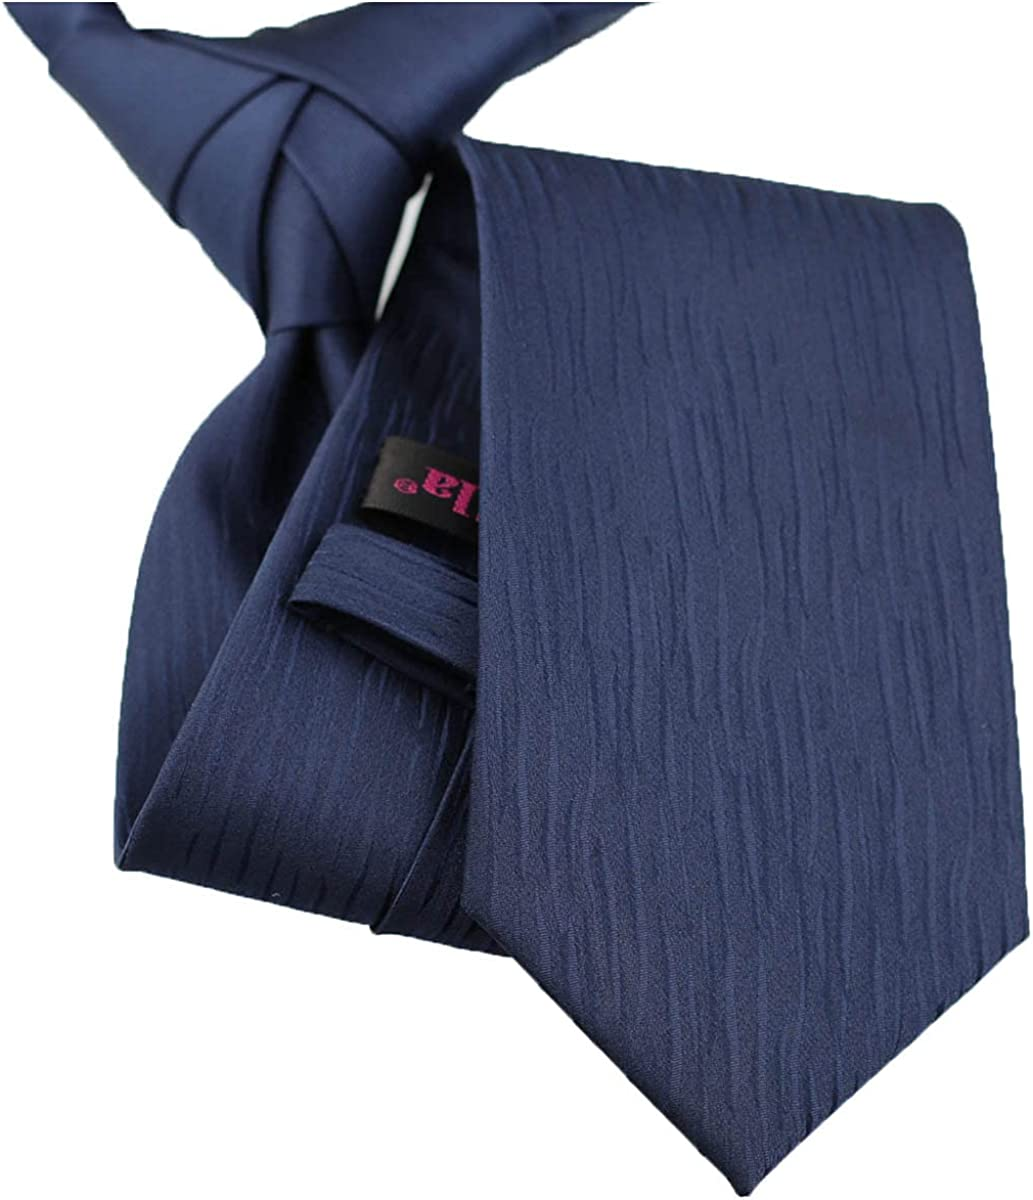 Coachella Ties Solid Color Selling and selling Knot Manufacturer regenerated product N Stripes Patchwork Contrast Tie